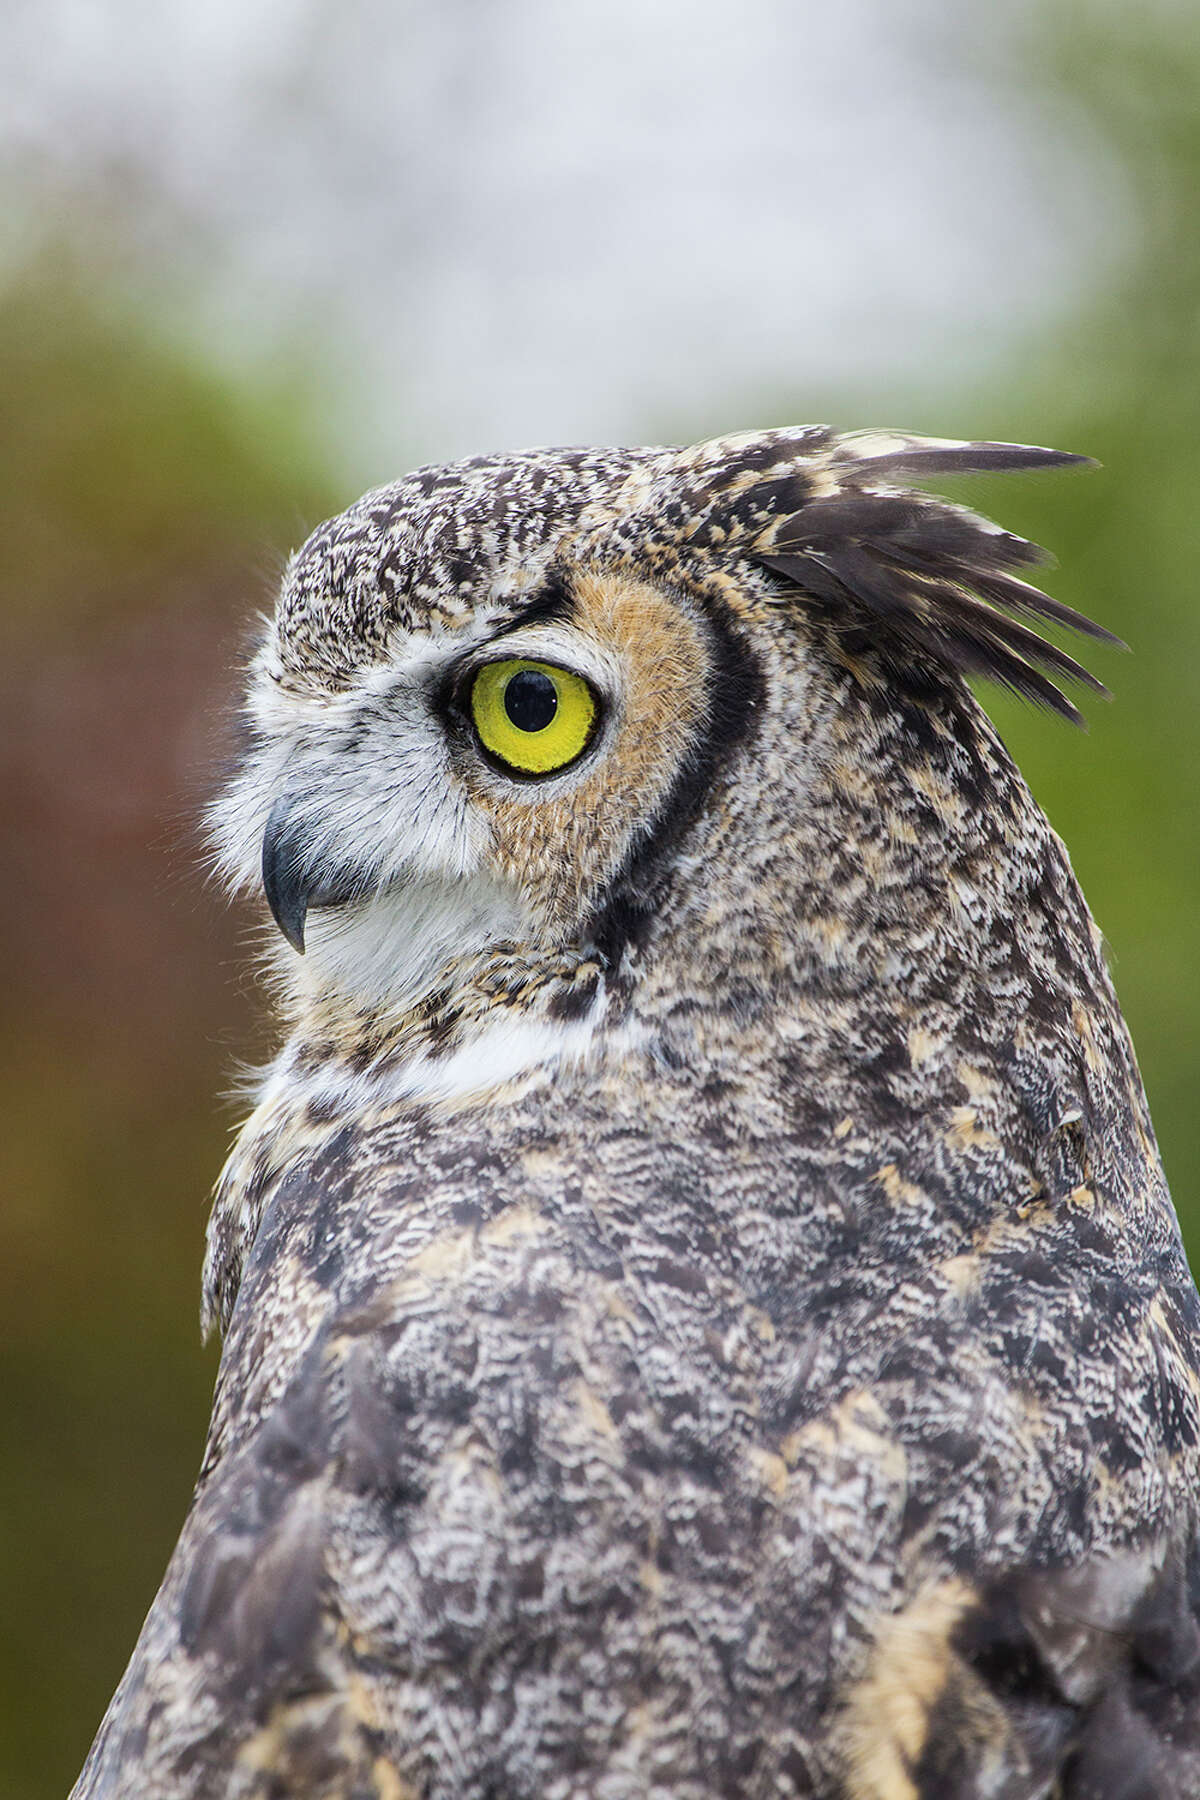 It's mating season for great horned owls. You might hear them on New Year's Eve.